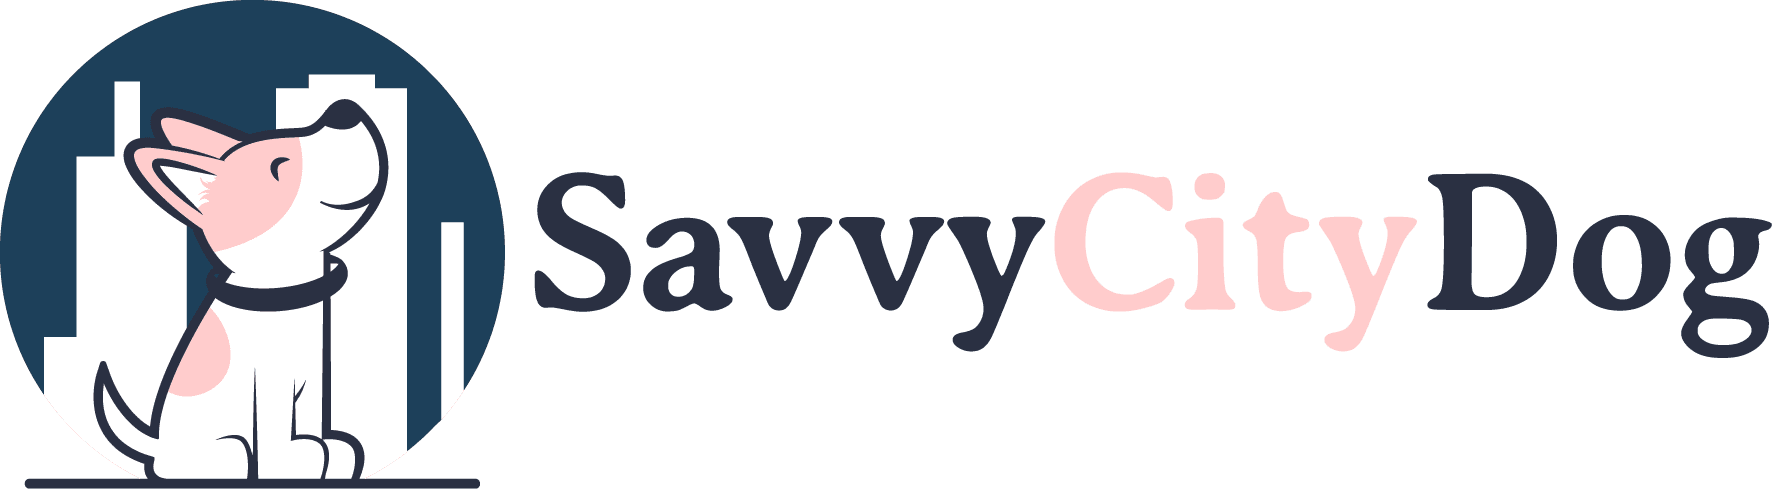 Savvy City Dog Logo